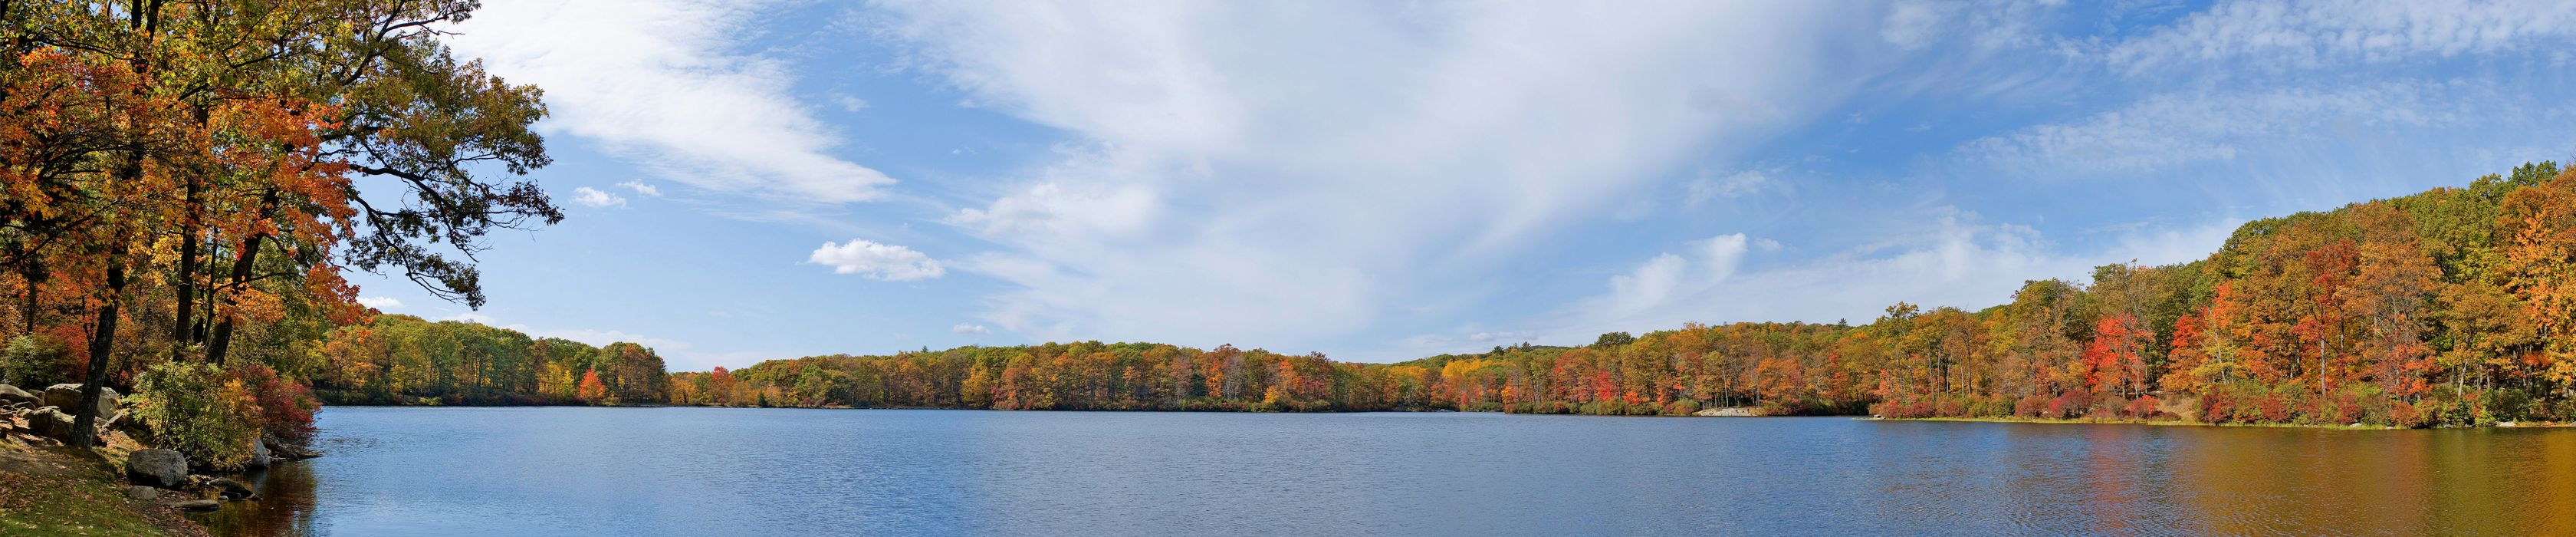 autumn forest lake   f wallpaper